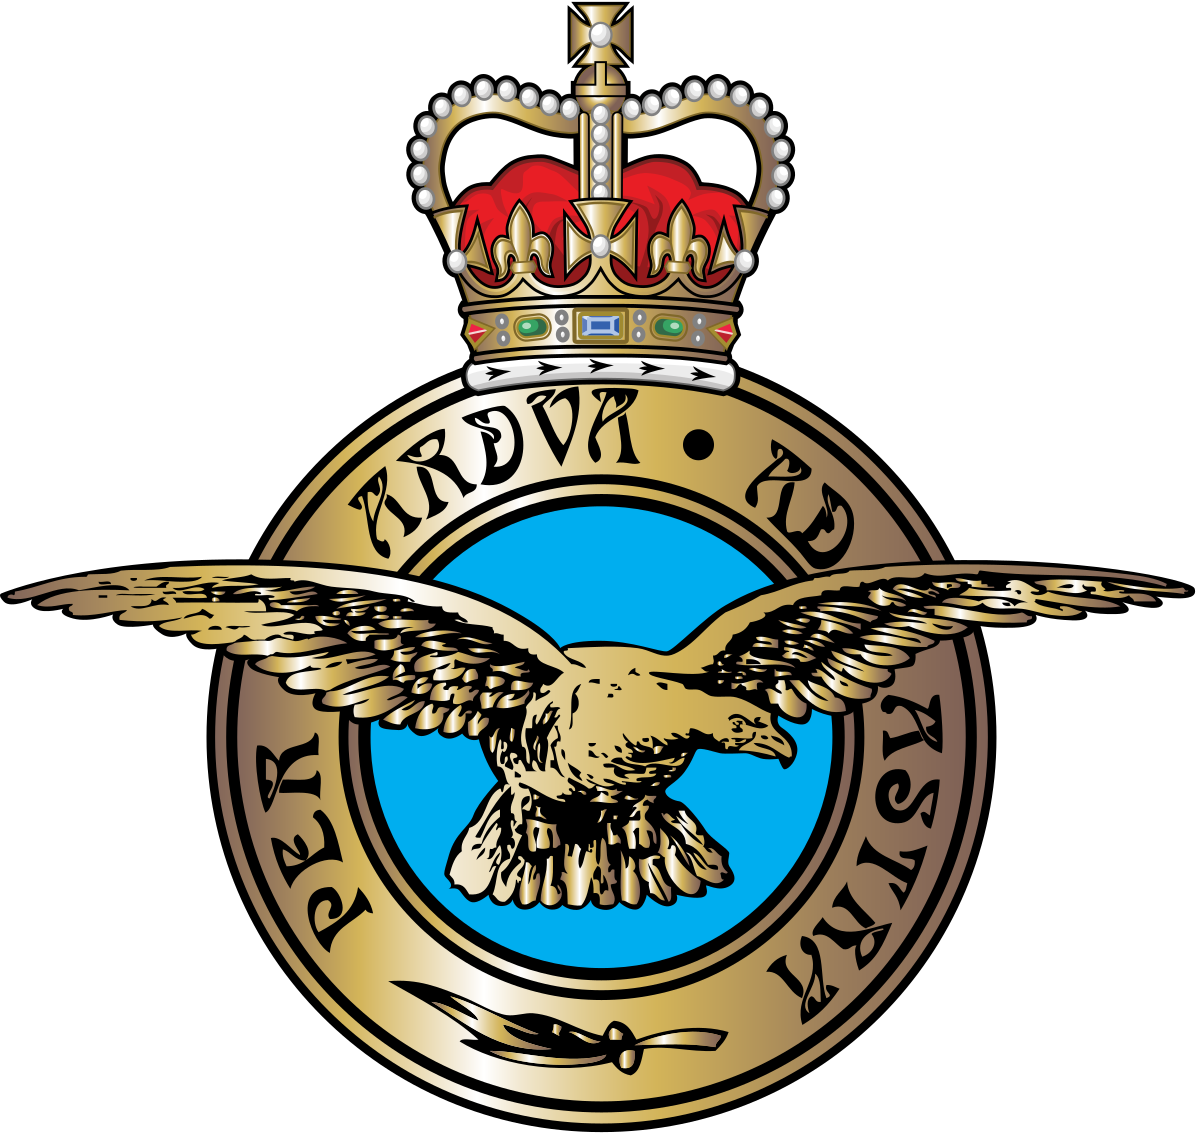 Royal Air Force.